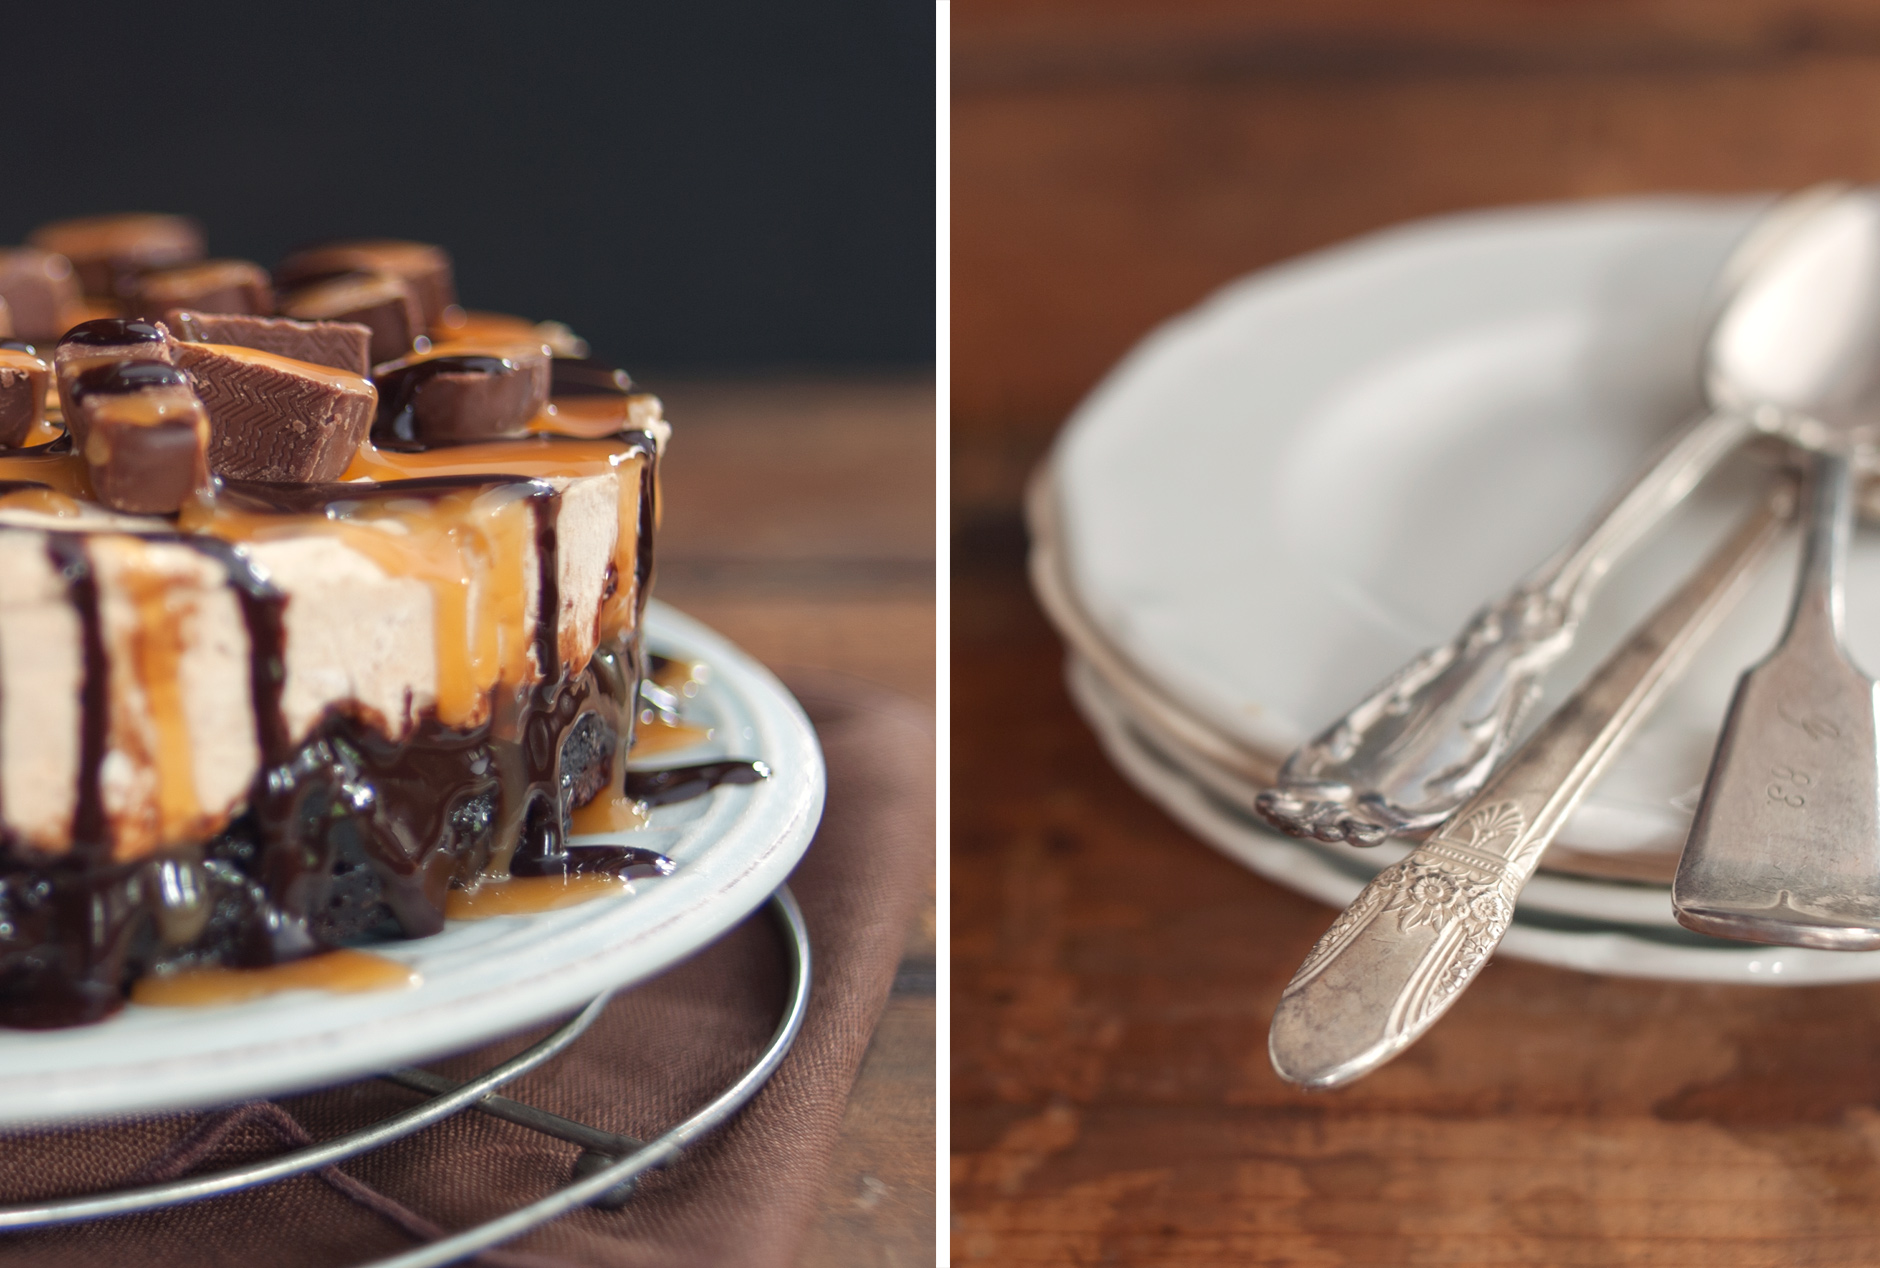 snickers_icecreamcake_food_photography_3.jpg